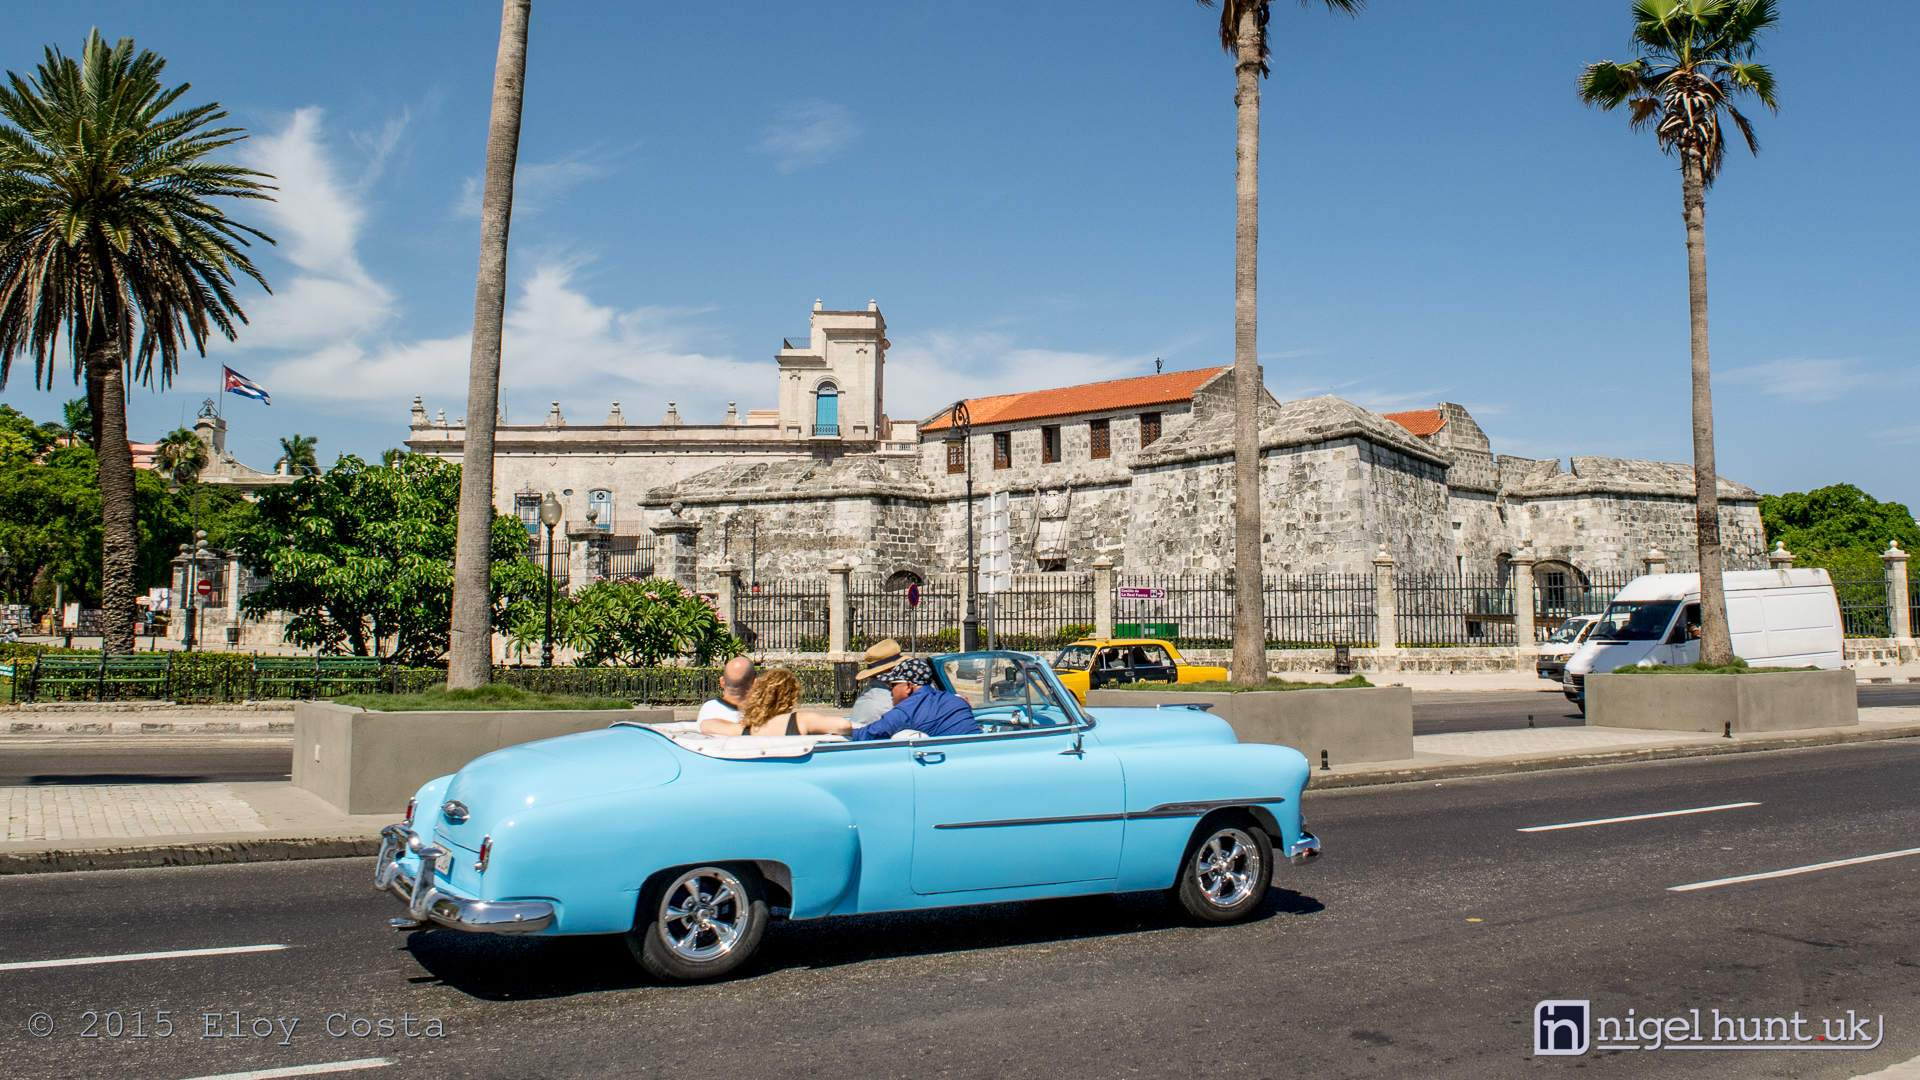 Tourists having a tour in vintage cars in the Malecon Avenue. In the background Castillo de la Real Fuerza